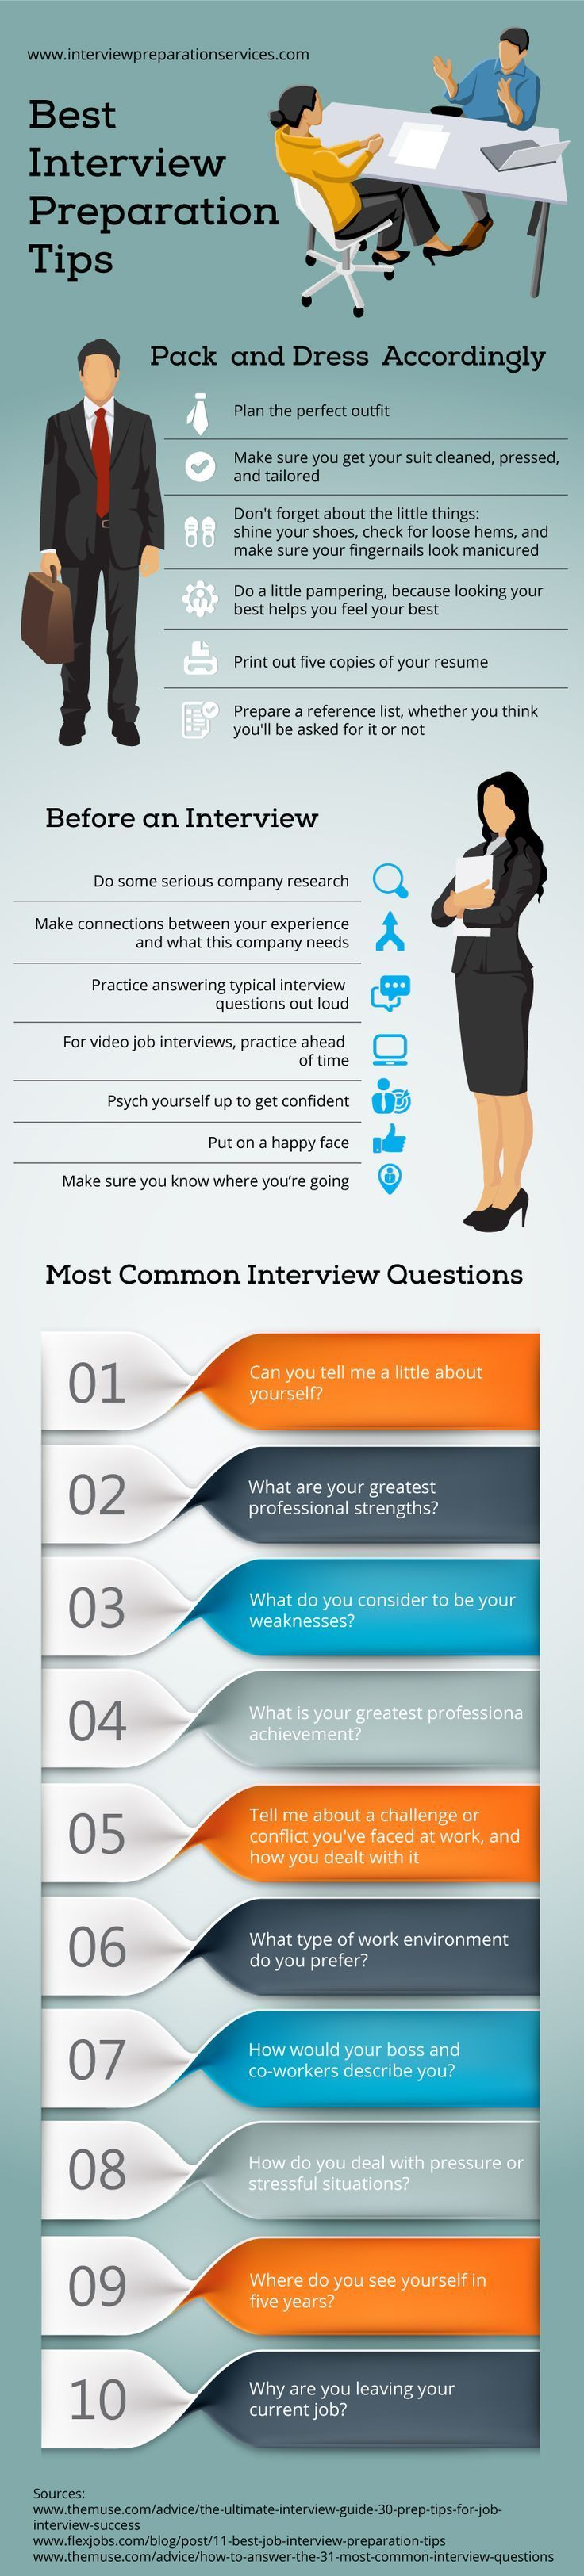 All in One Place: The Best Job Interview Preparation Tips [Infographic] | The Savvy Intern by YouTern